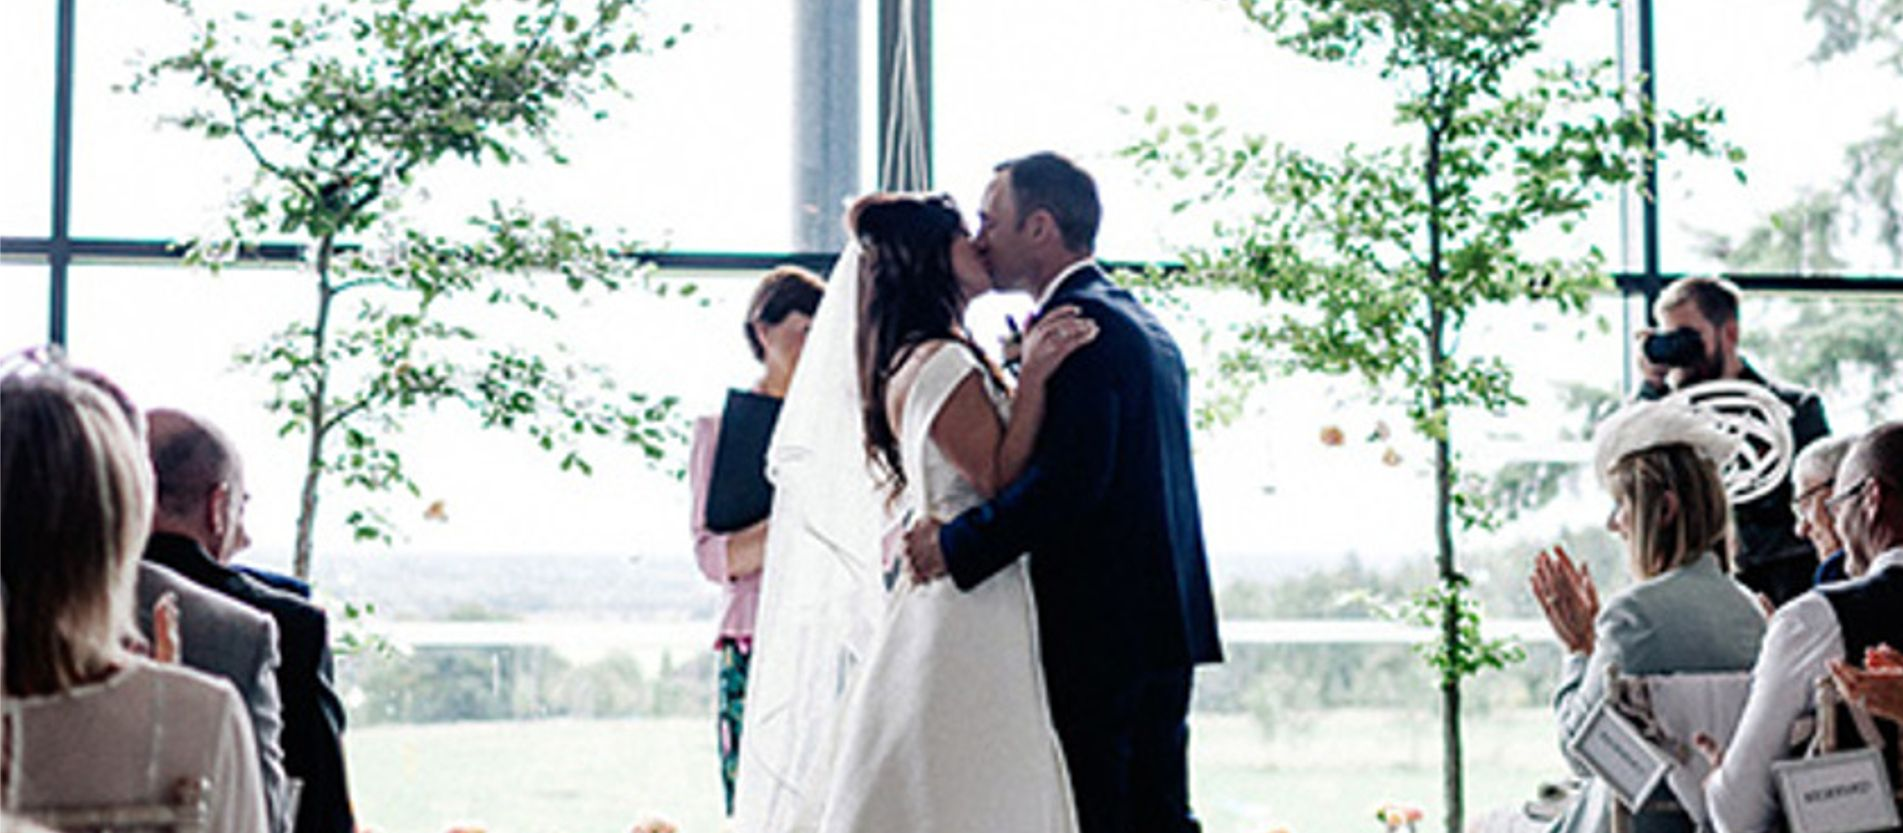 Looking For The Best Central Coast Wedding Photography Wedding Photography All Inclusive Wedding Packages Coast Wedding